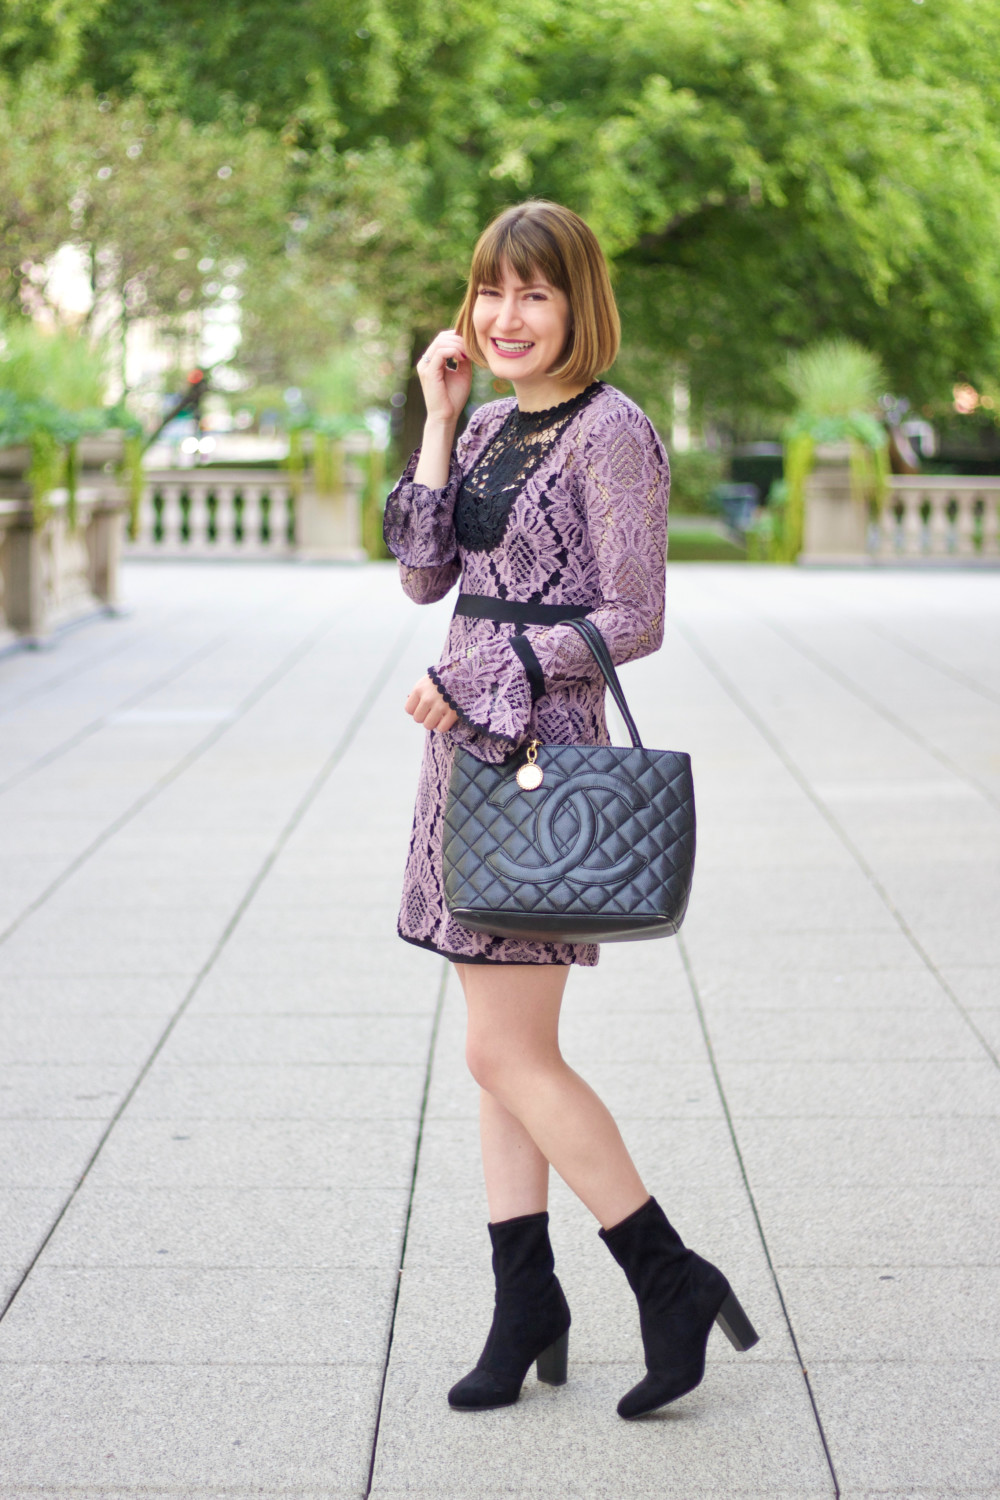 Lace Dress + Chanel Bag From DesignerShare